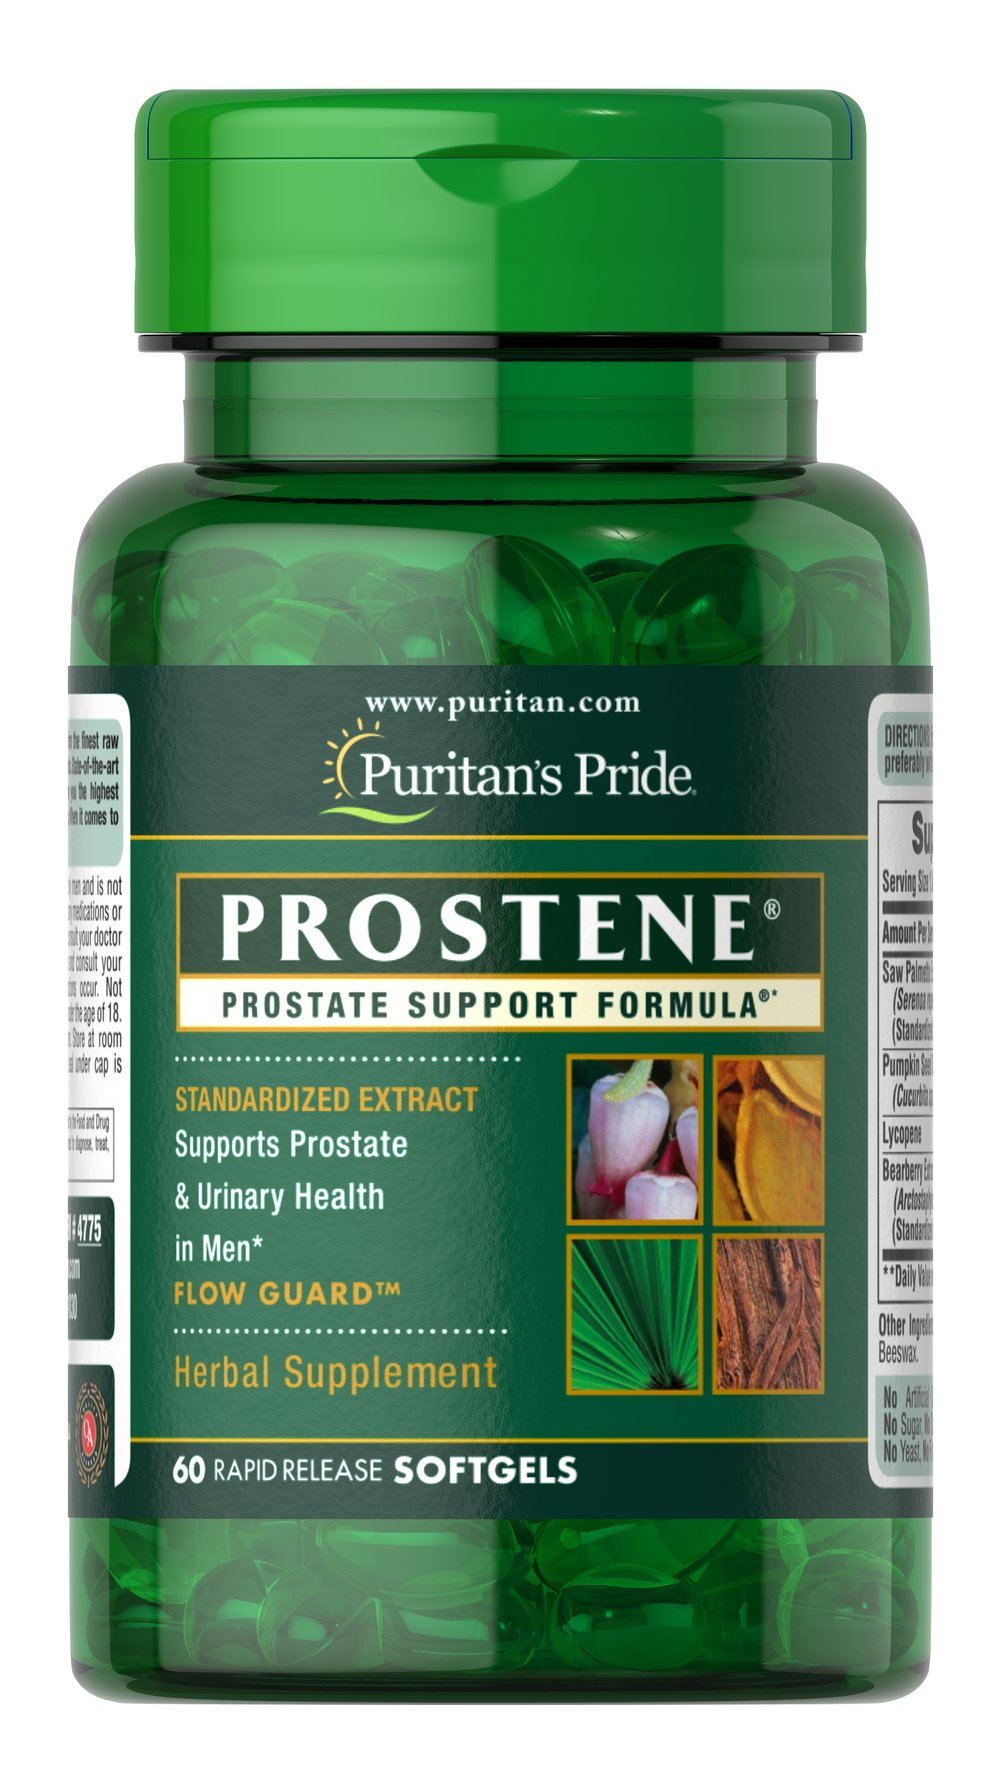 Prostene® Prostate Support Formula® <p>Two of the most popular natural ingredients (Saw Palmetto & Lycopene) are combined into one powerful prostate-supporting formula. Saw Palmetto Extract (80 mg) has been recommended for men for decades. Lycopene (3 mg) is a much publicized antioxidant from tomatoes. Prostene softgels also contain: Pumpkin Seed Oil (80 mg) and Uva Ursi (5 mg) for extra power.</p> 60 Softgels  $15.99